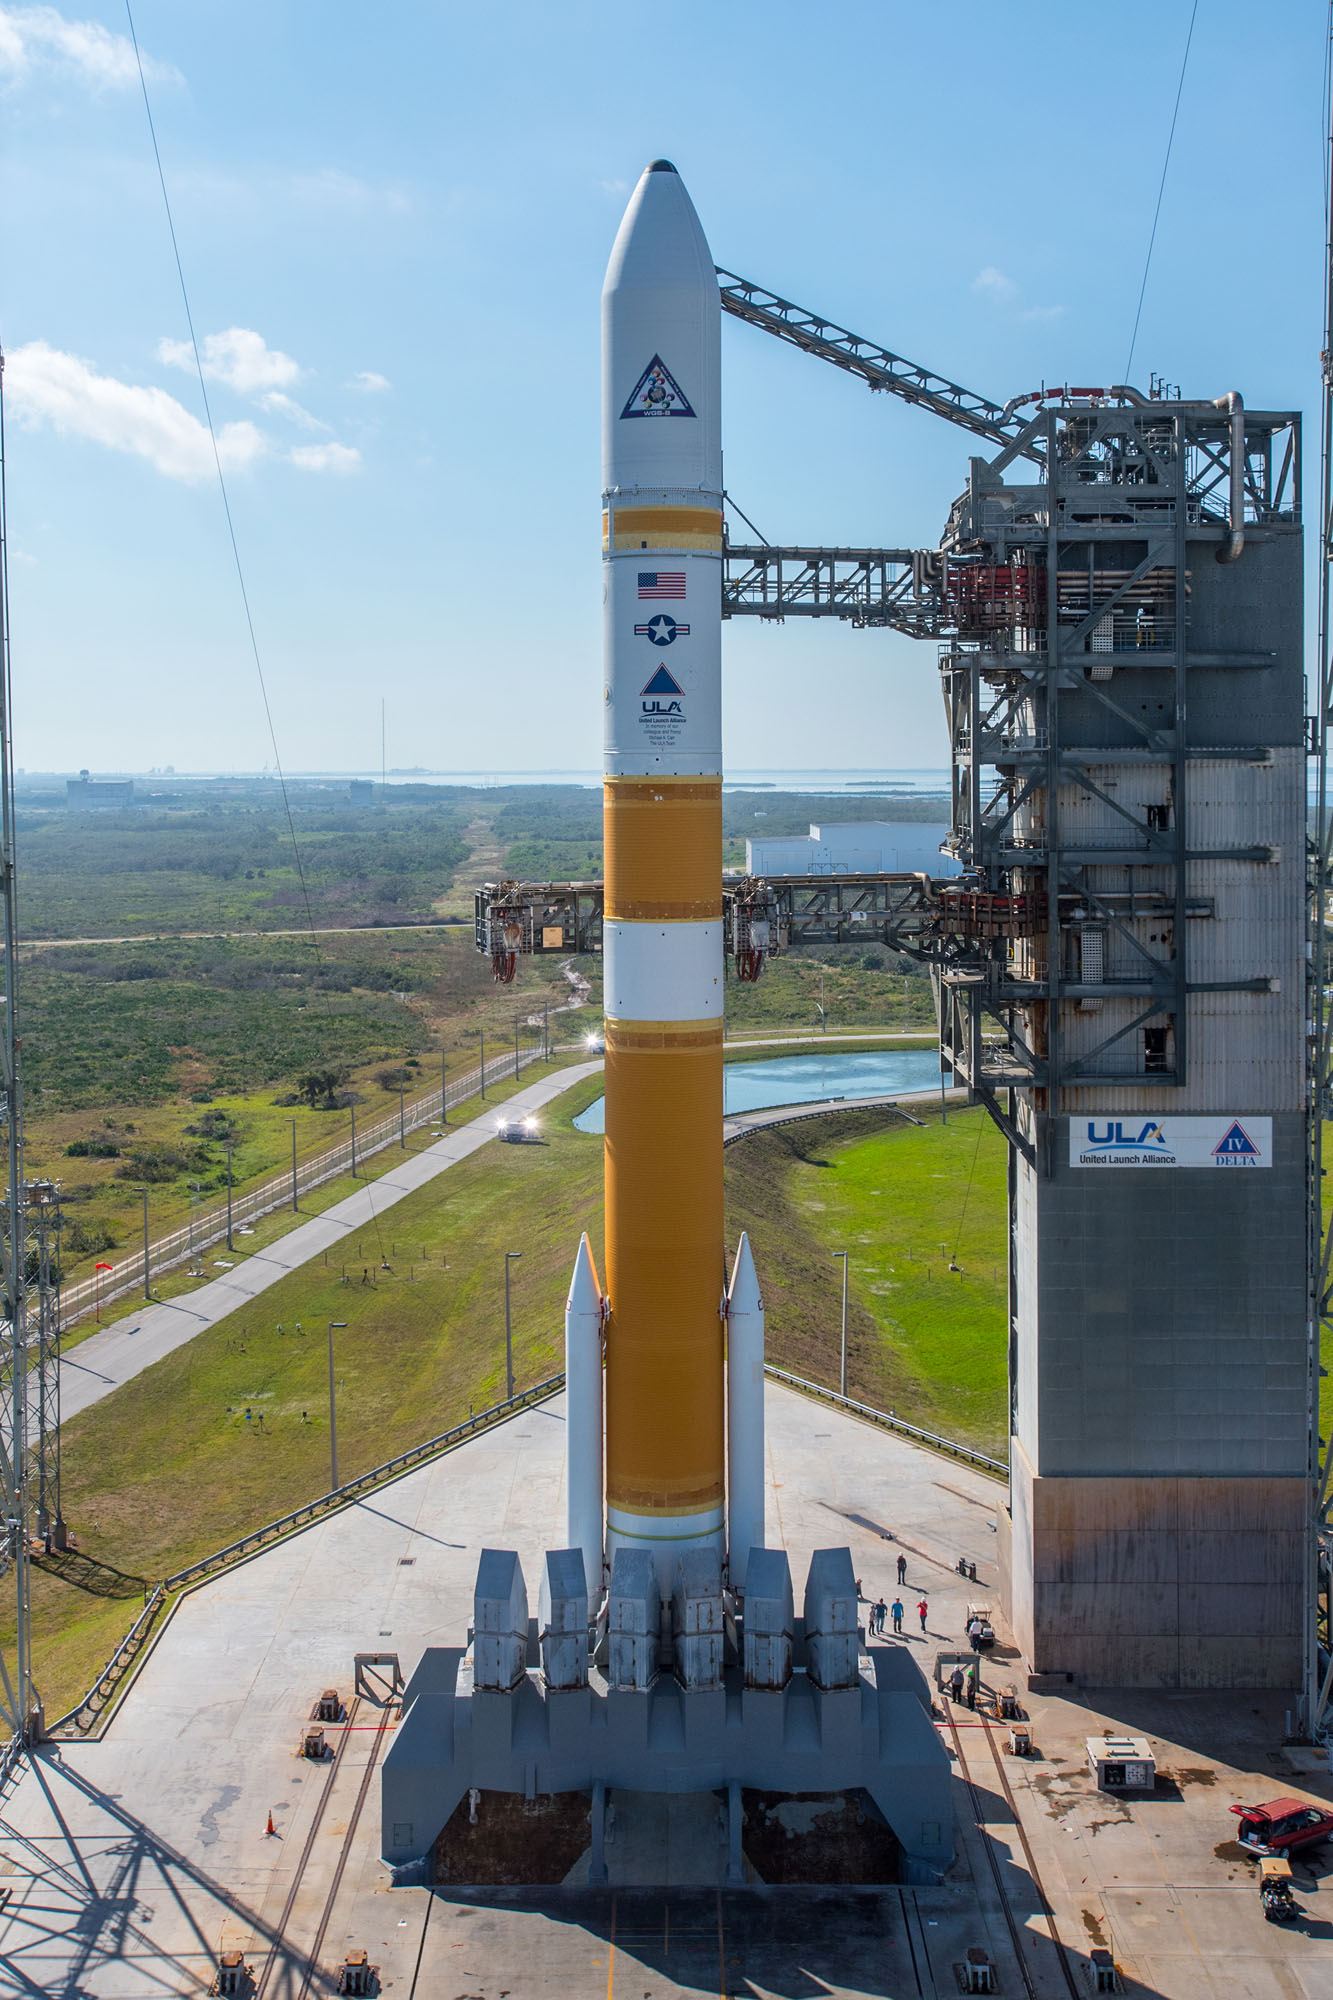 photos  launch pad gantry retracted from delta 4 rocket